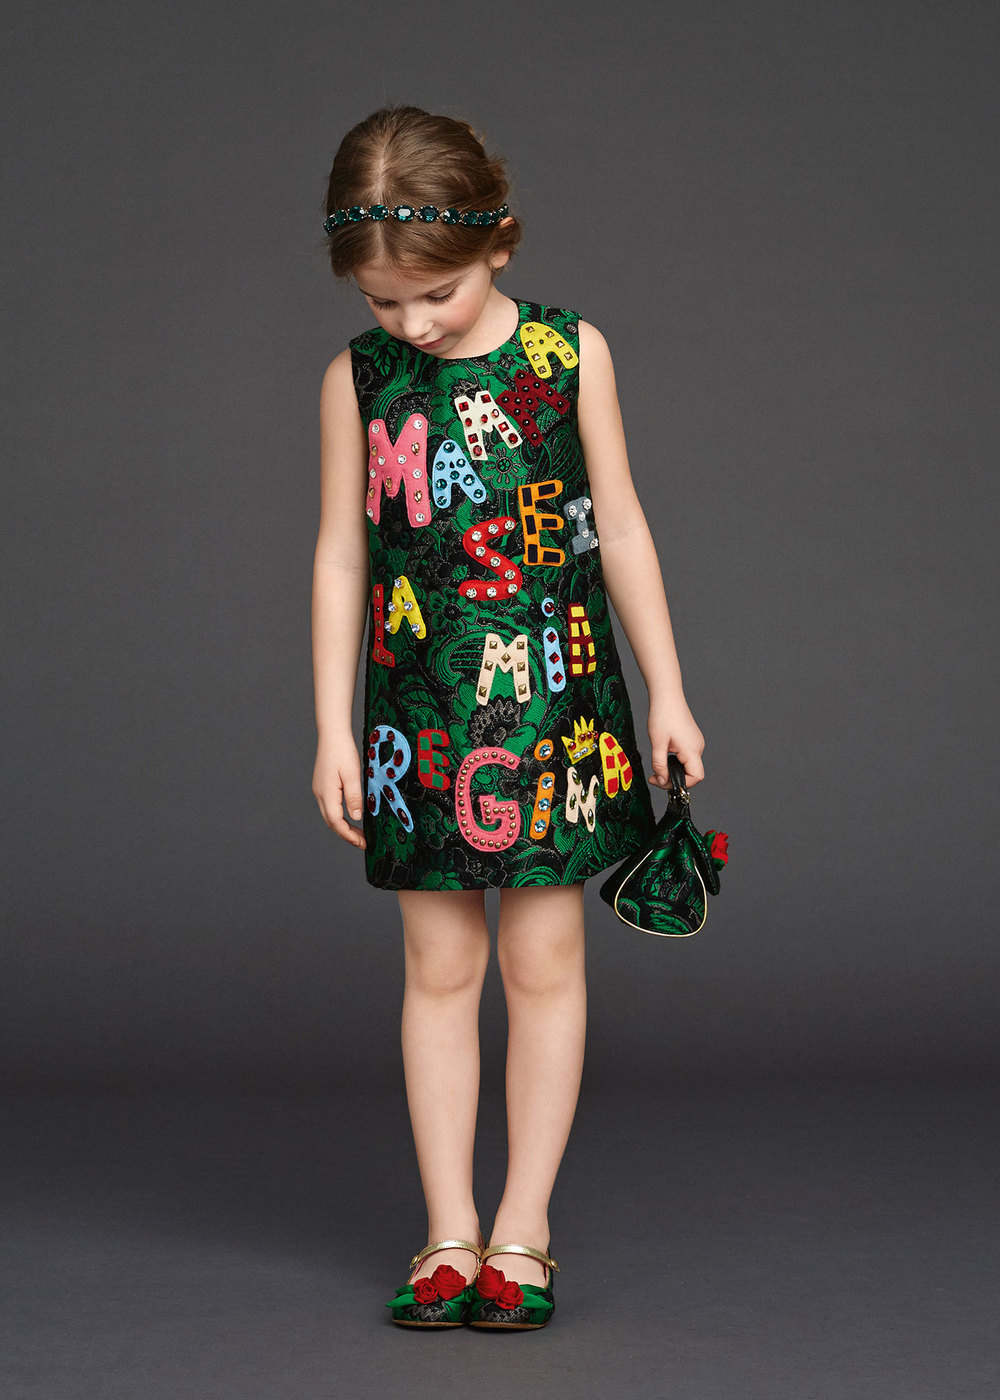 dolce-and-gabbana-winter-2016-child-collection-45-zoom.jpg